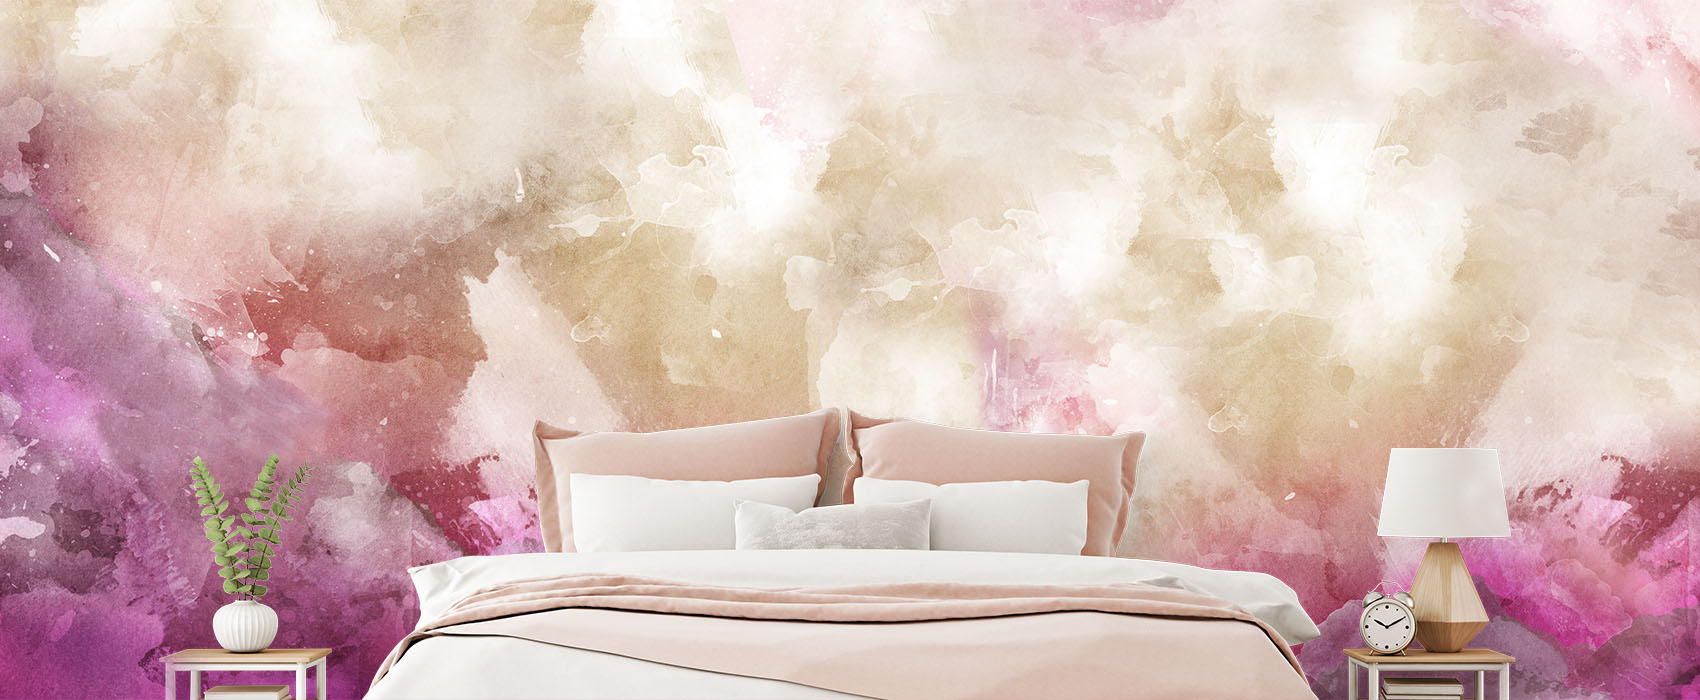 Watercolour Effect Quartz Abstract Wallpaper Wall Mural in bedroom with bed and pillows